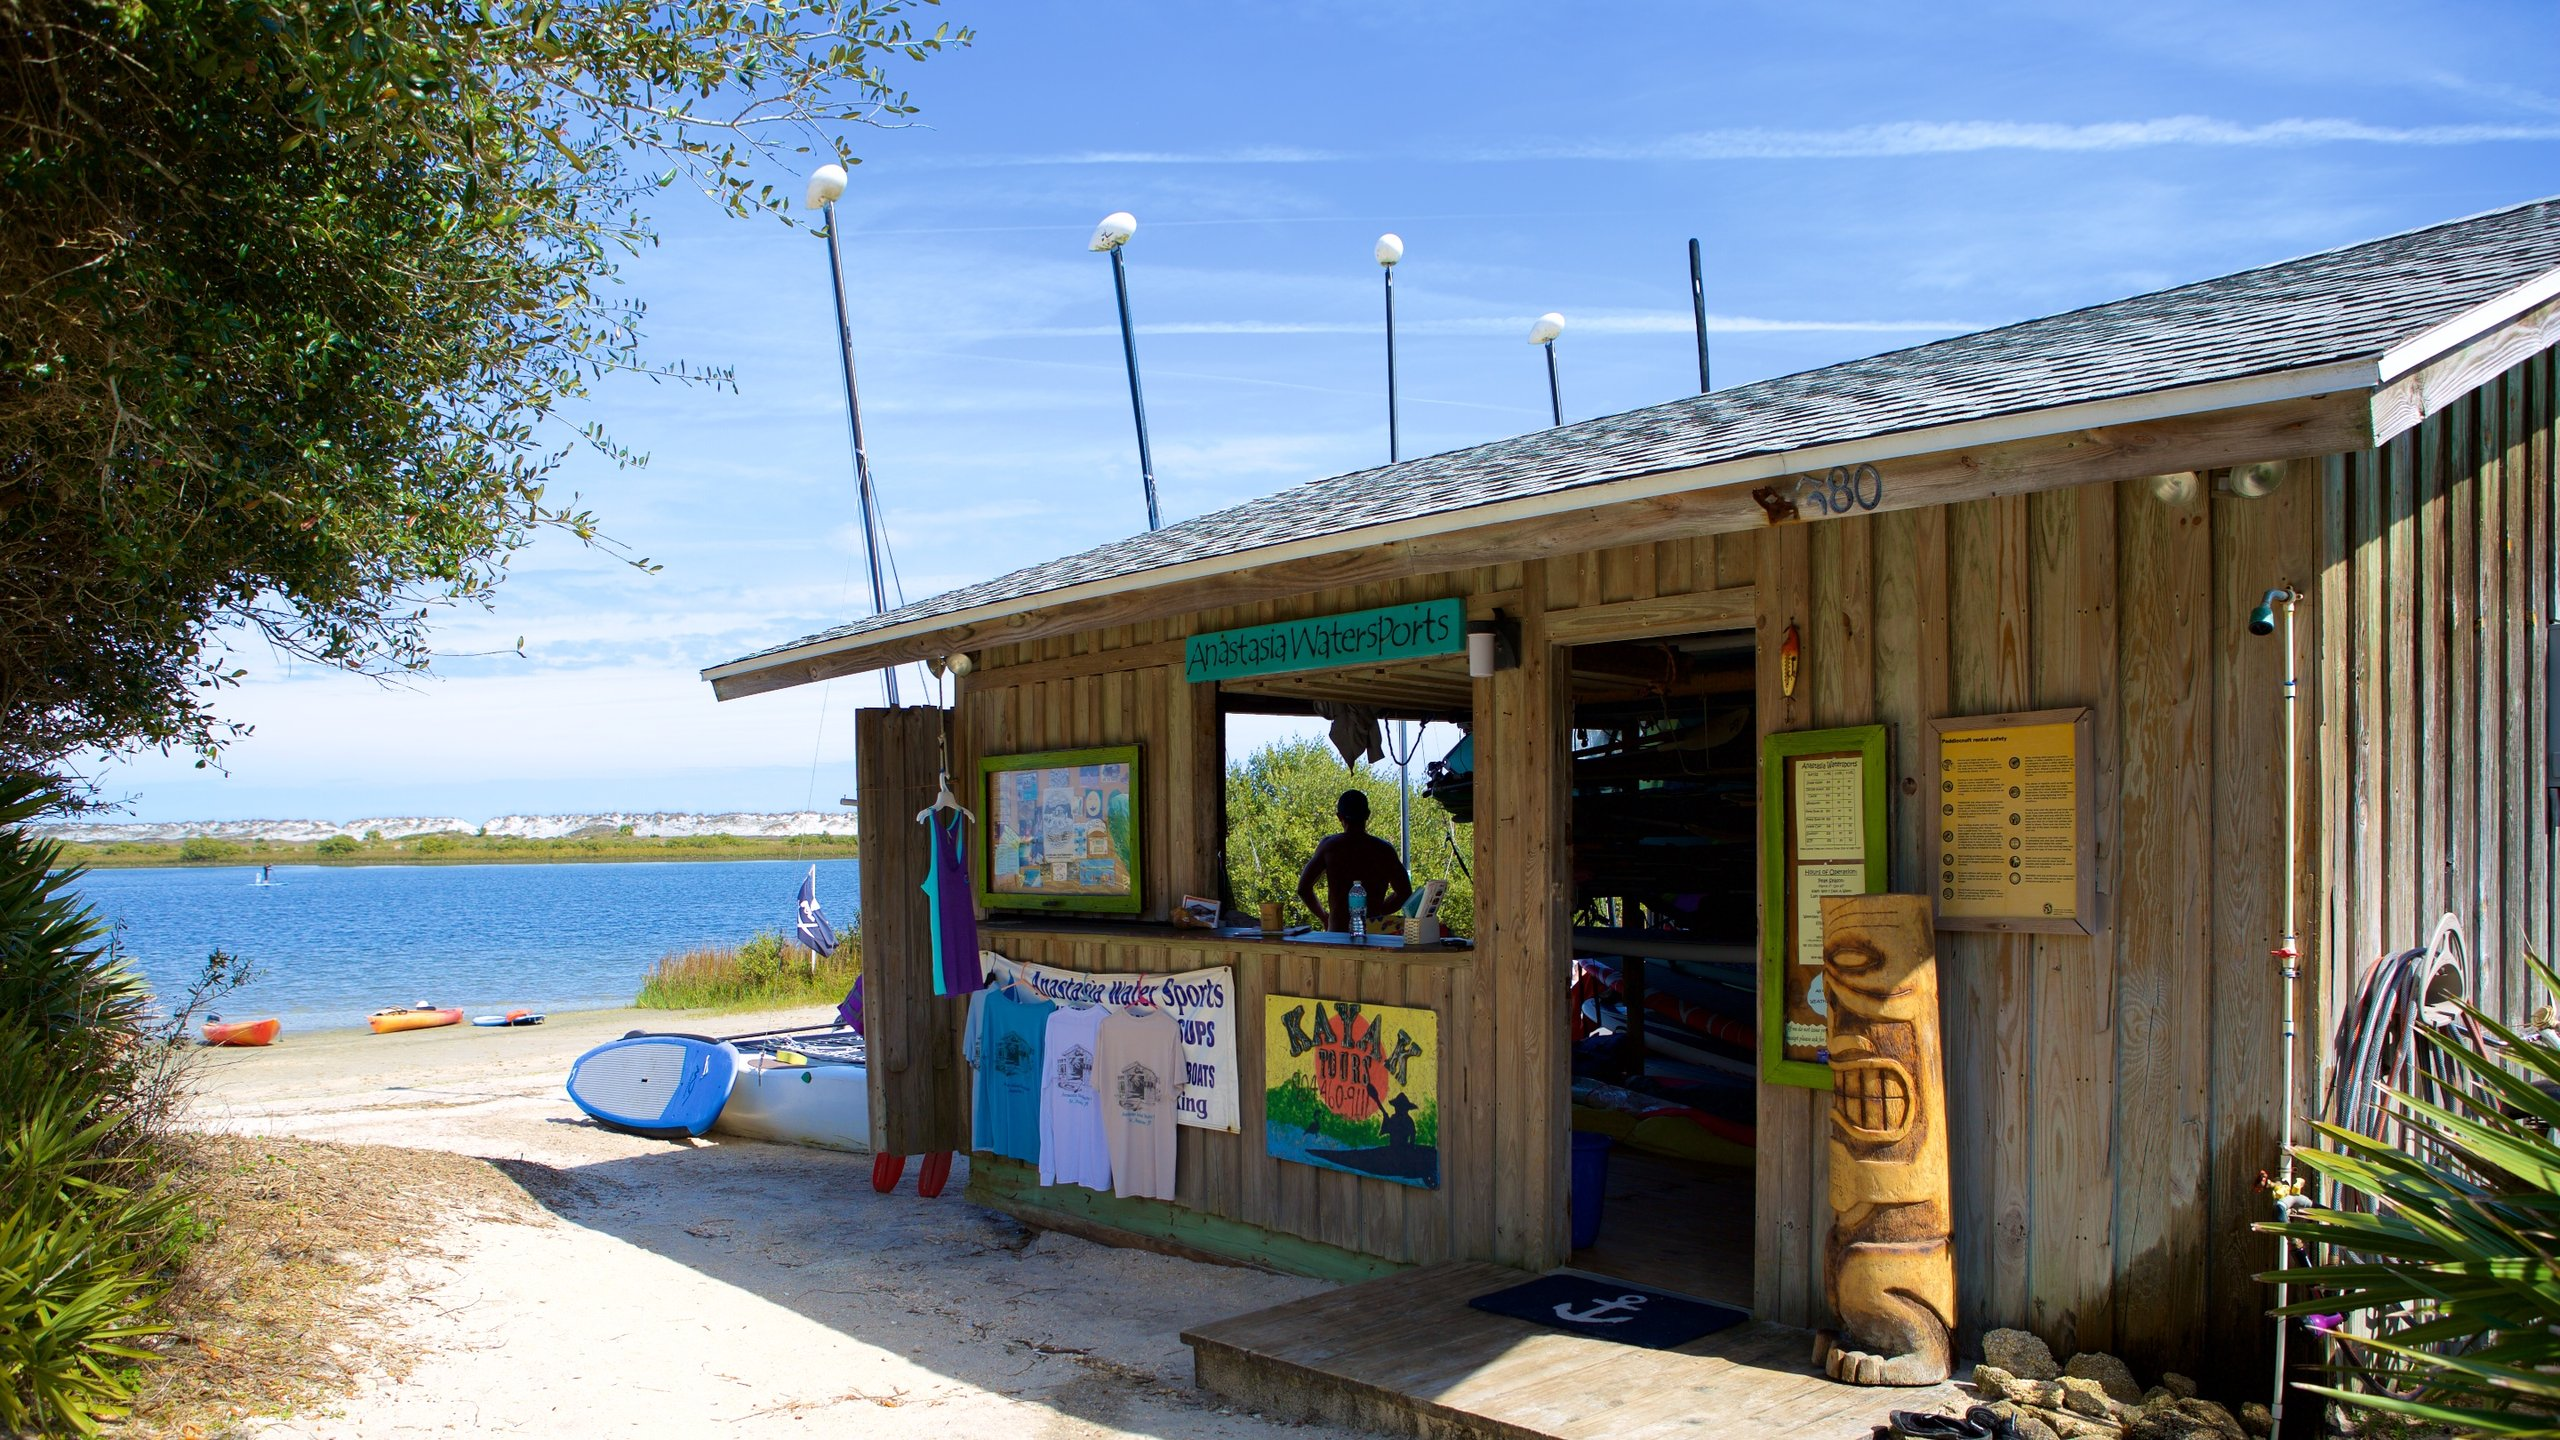 Camp in the forest and relax on spectacular beaches when you visit one of Florida's most beautiful state parks.